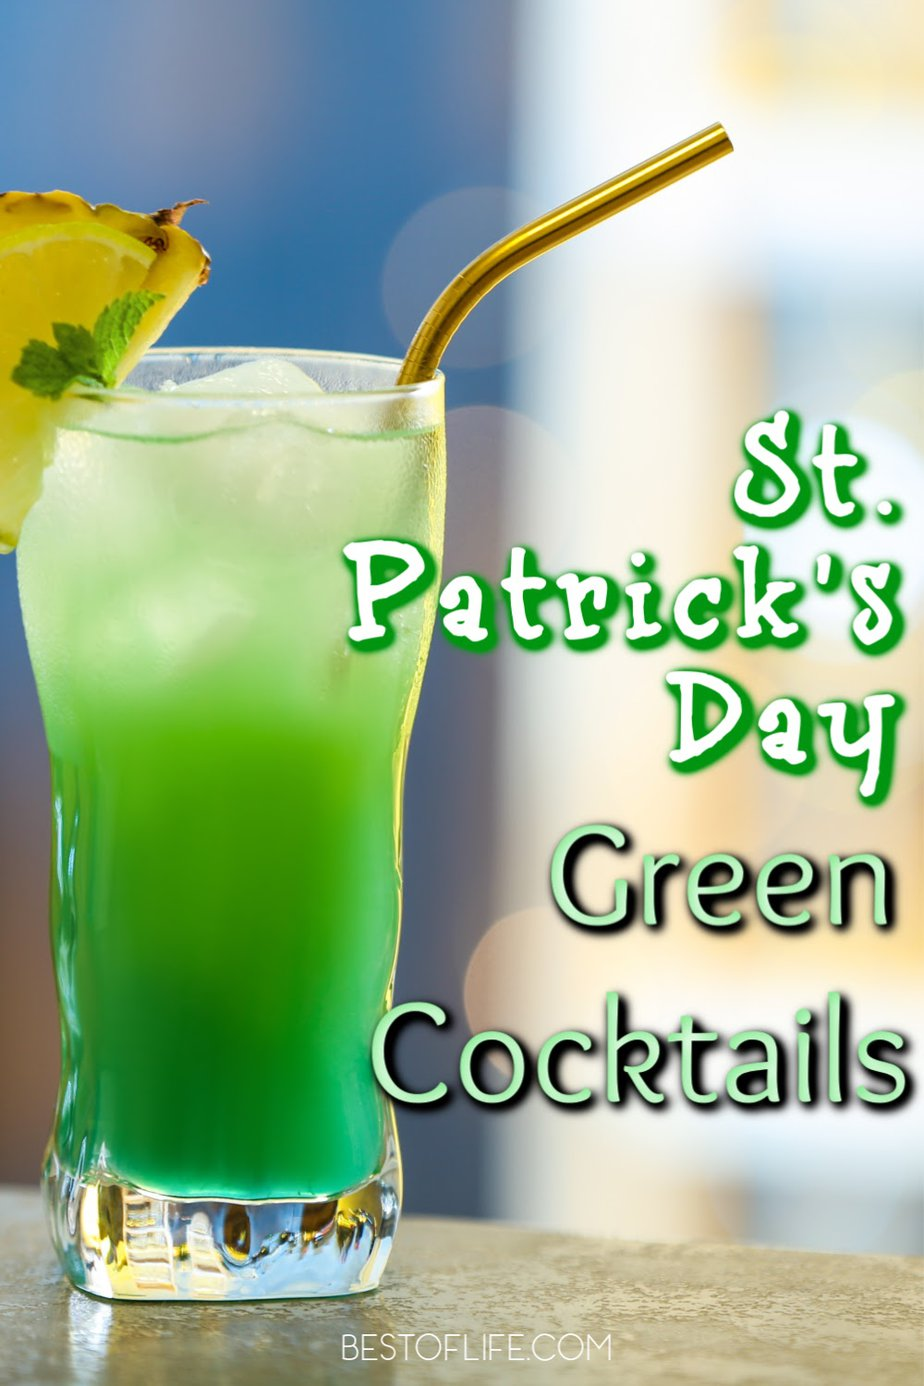 Enjoy these festive green cocktails for St Patricks Day as you celebrate the Irish traditions of the holiday with friends and family. St Patricks Day Cocktails | Irish Cocktails | Green Drinks | St Patricks Day Recipes | Party Food | Party Drink Recipes #stpatricksday #cocktails via @thebestoflife